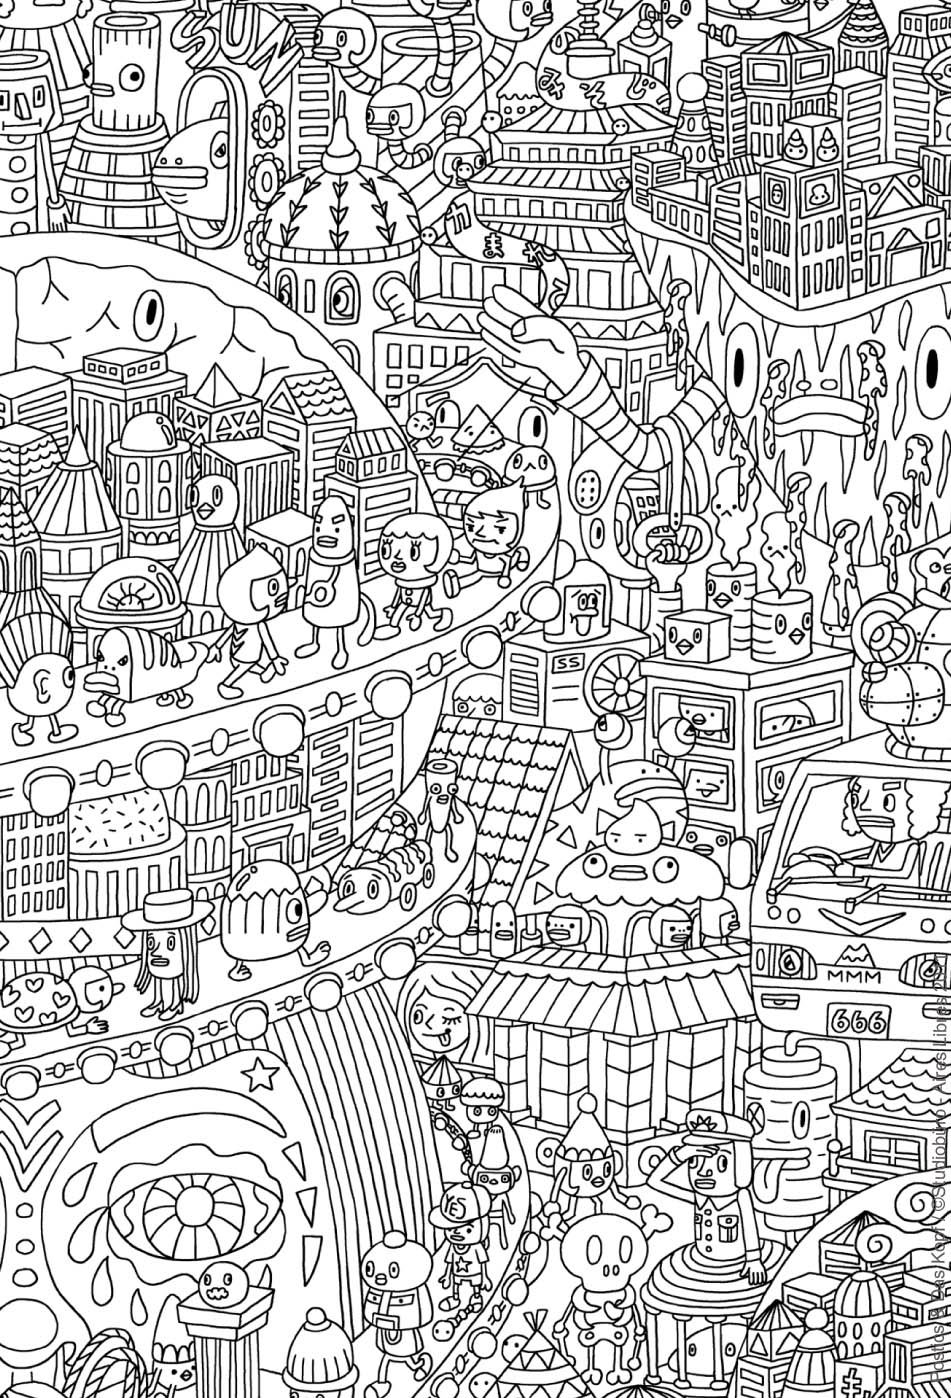 adults color childrens coloring books free printable coloring pages for adults advanced color books coloring adults childrens